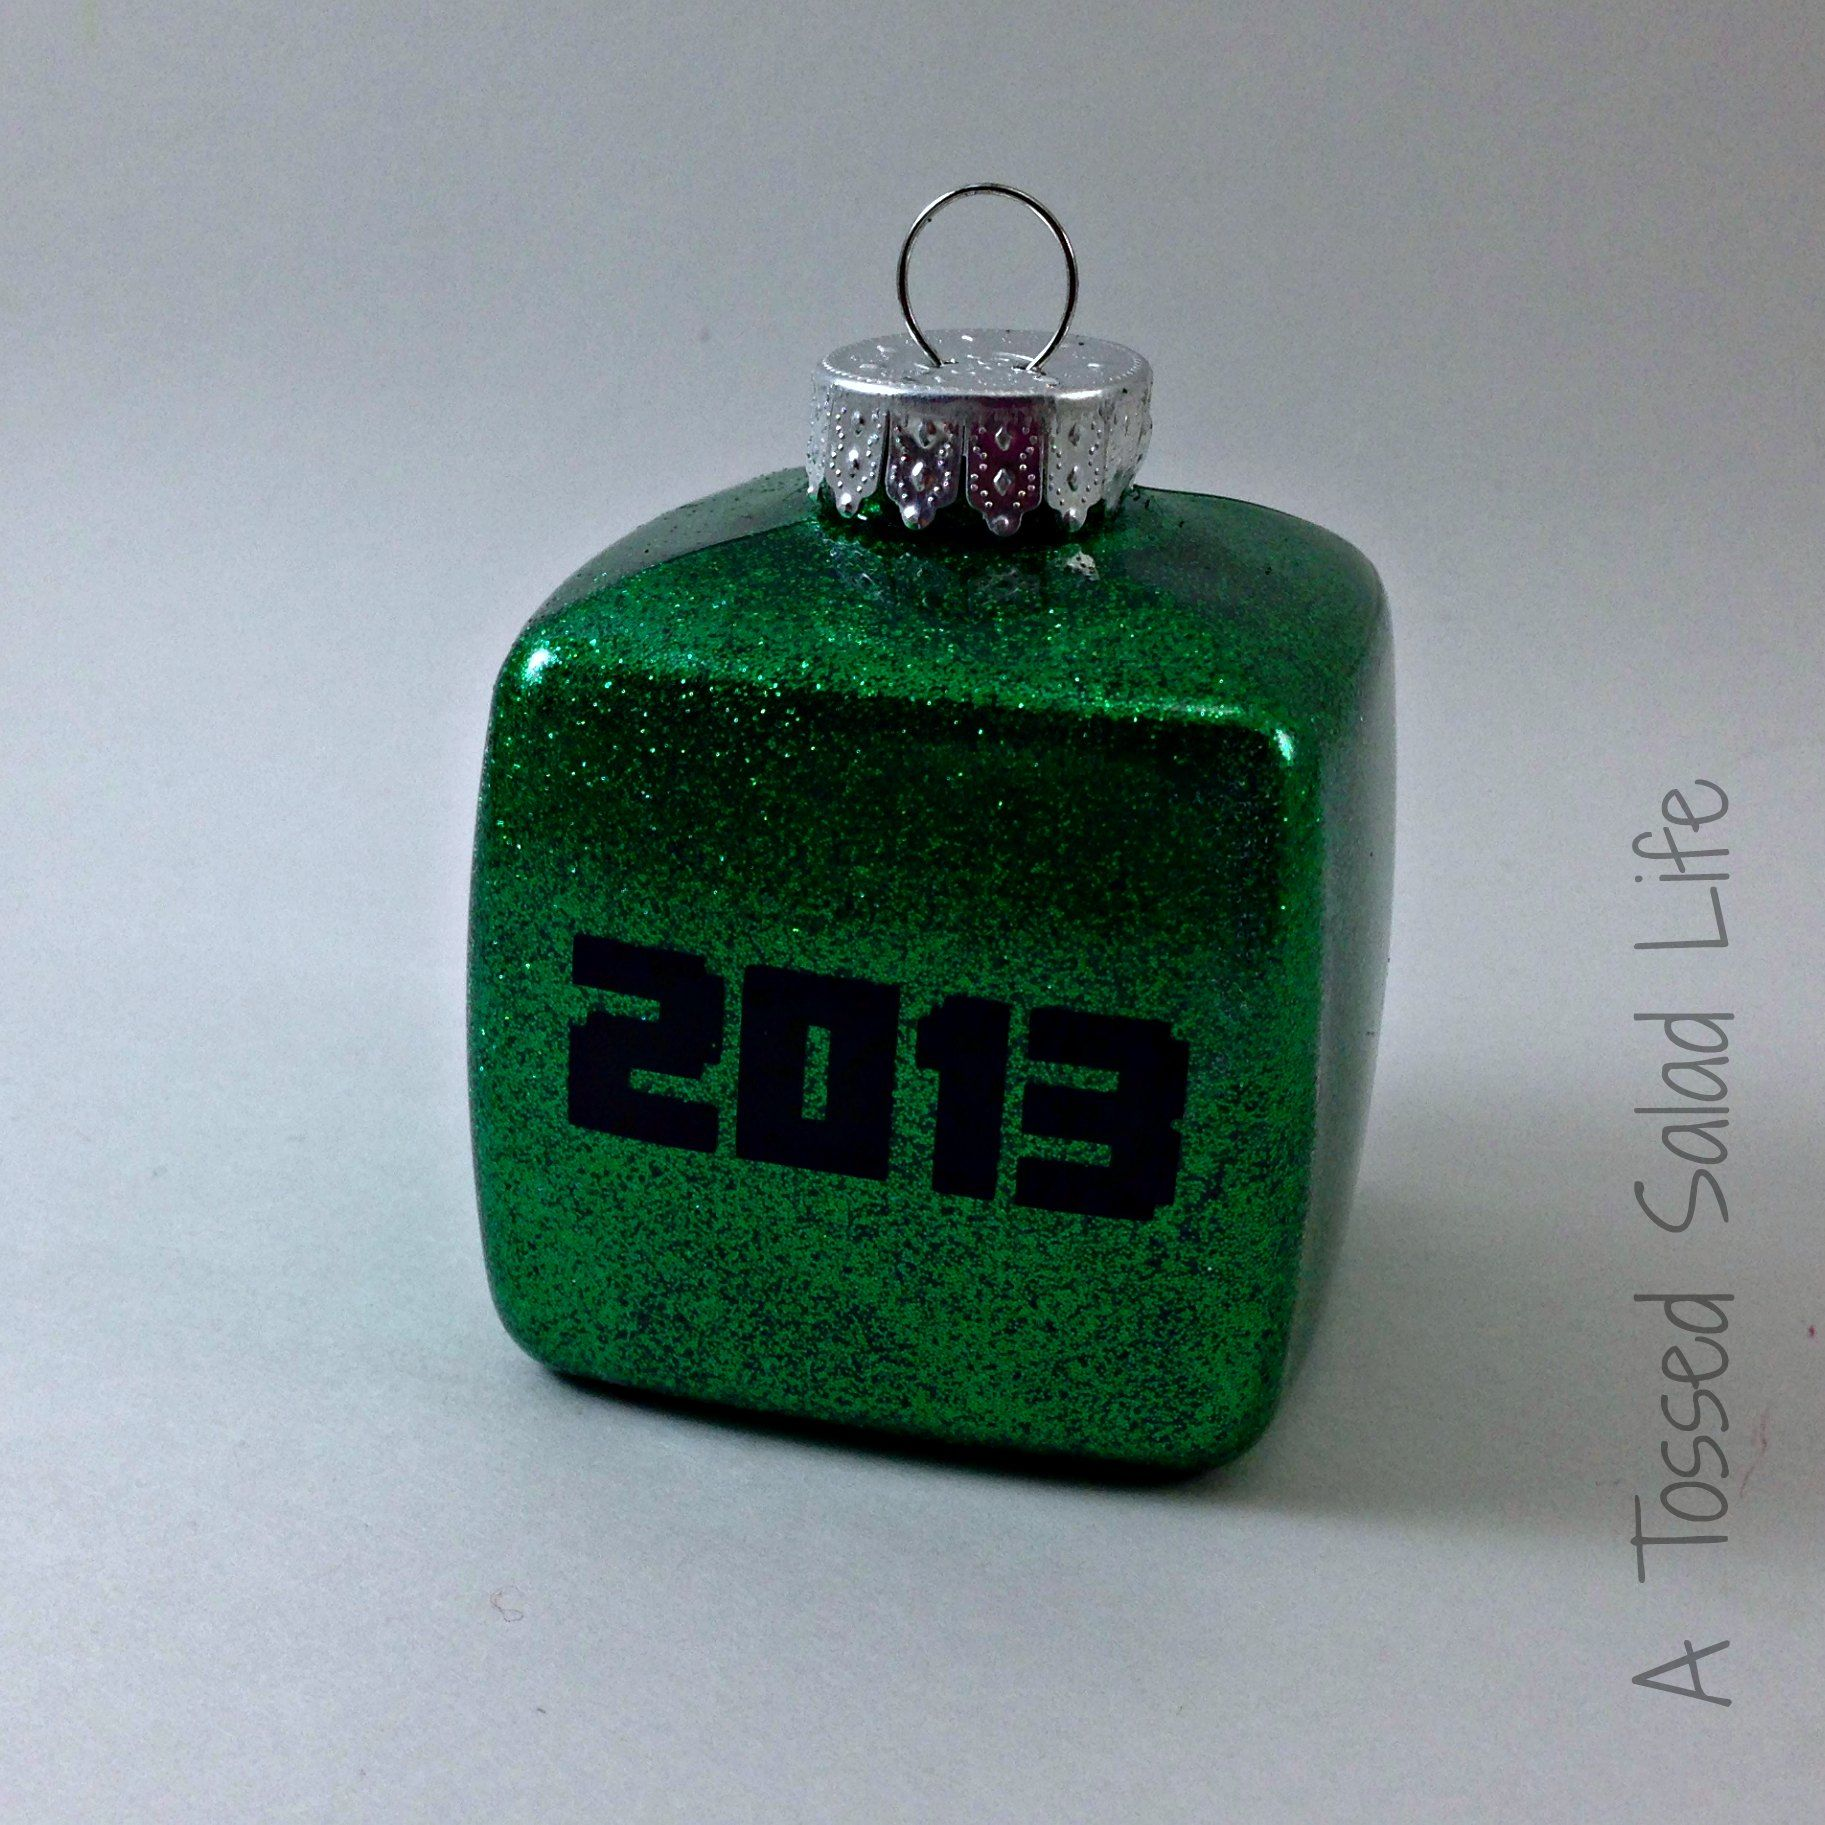 Glitter And Vinyl Minecraft Ornament For Christmas Digital Clock Project My Mom Made That Ornmanets How To With Vlog Cut File